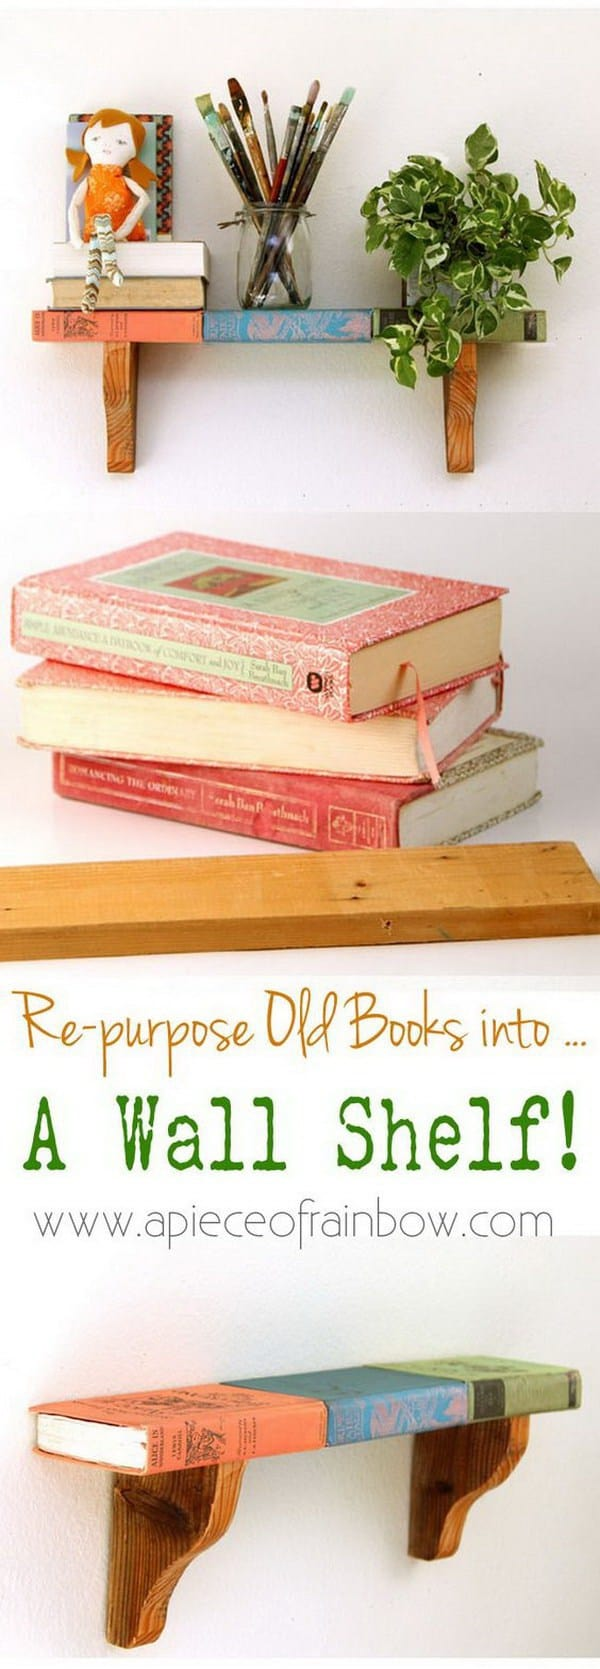 DIY shelves repurpose books into shelf